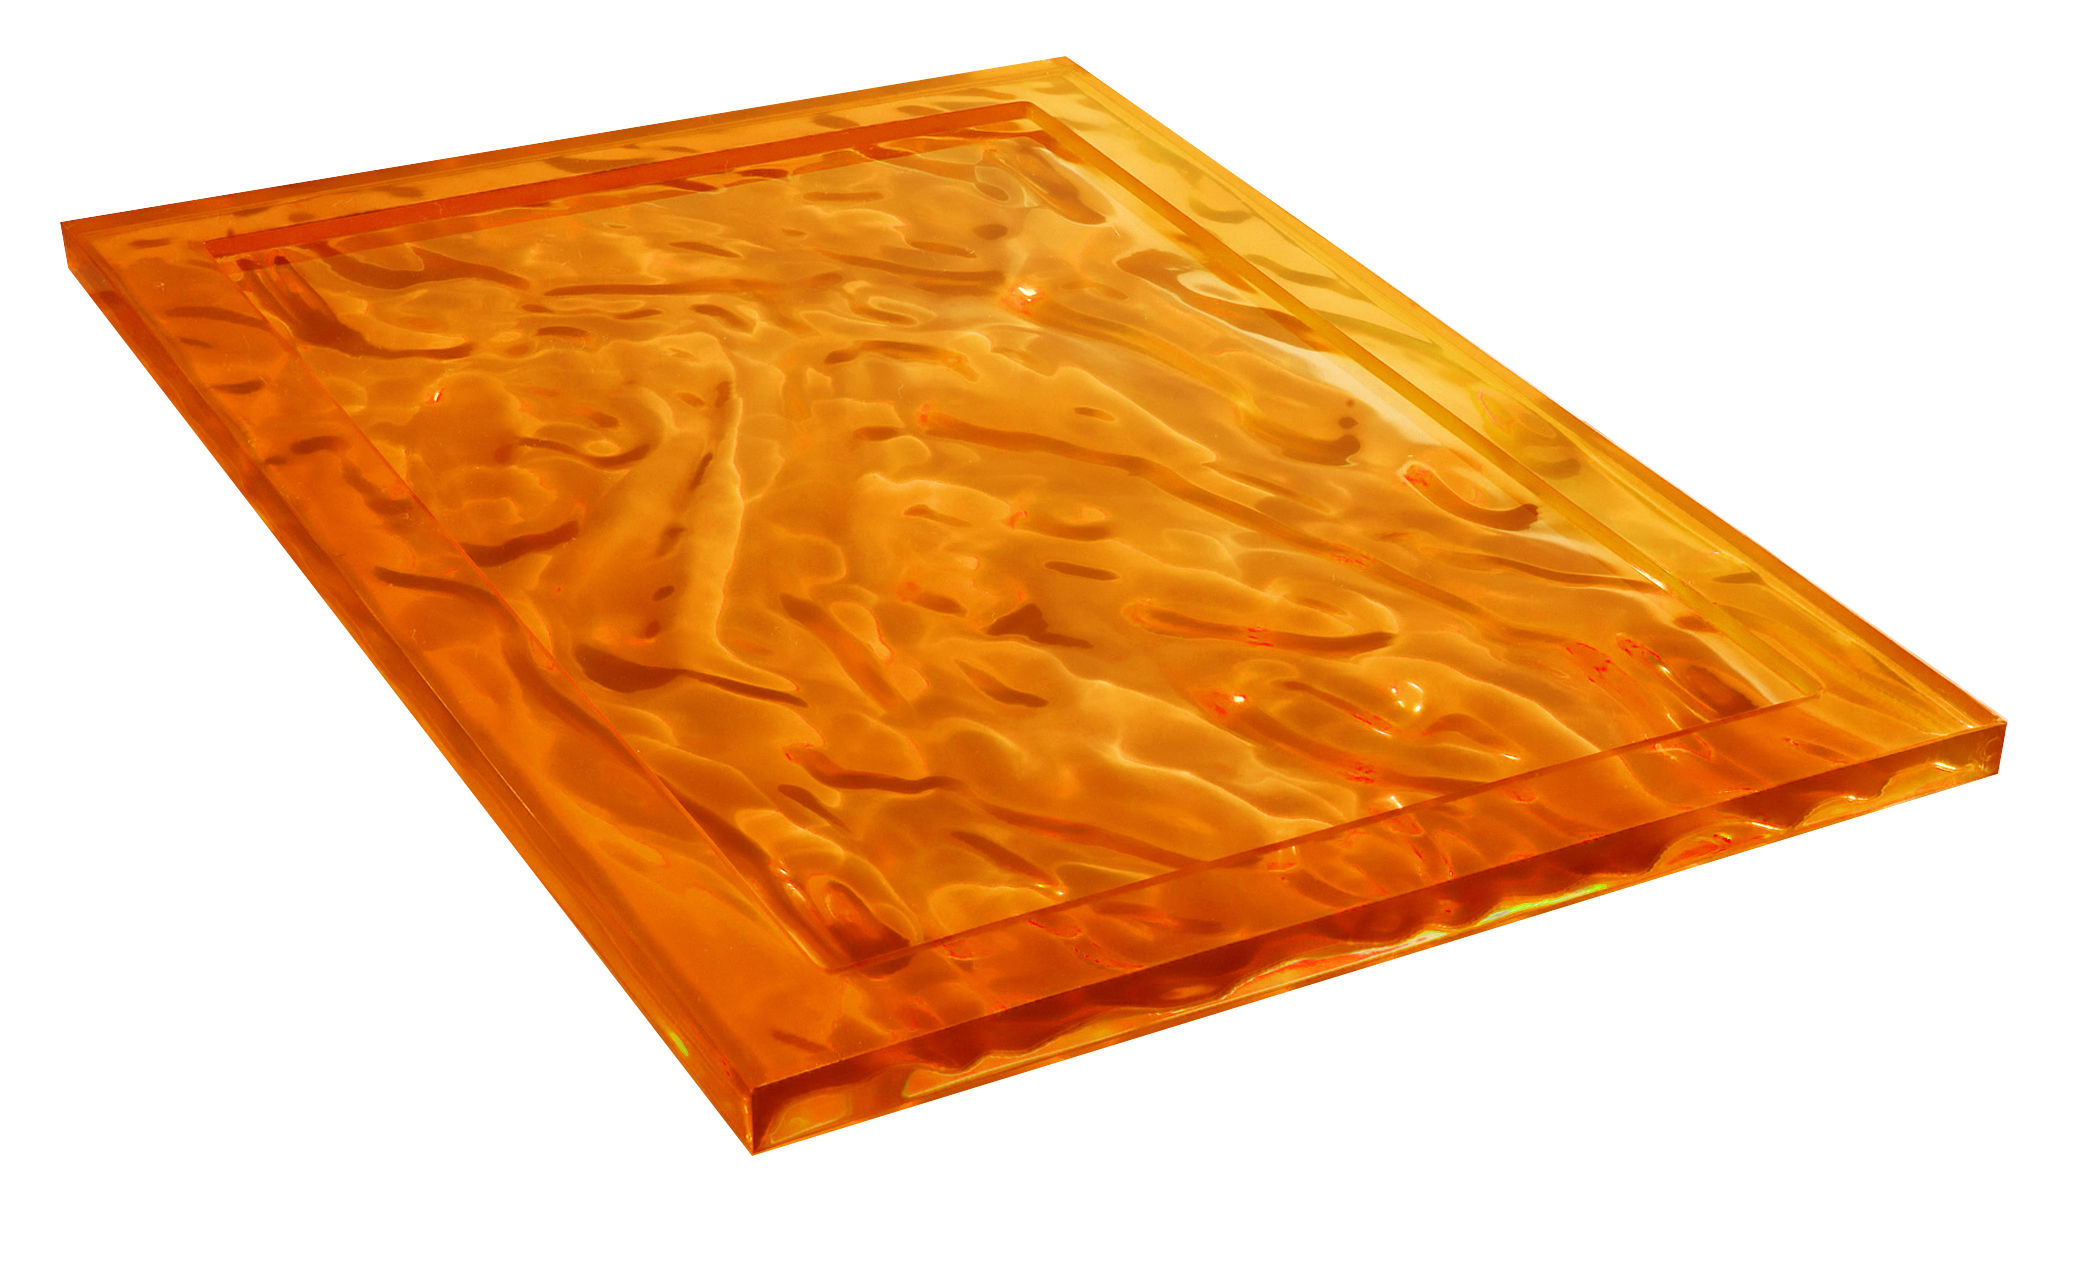 Tableware - Trays - Dune Small Tray - 46 x 32 cm by Kartell - Orange - Technopolymer